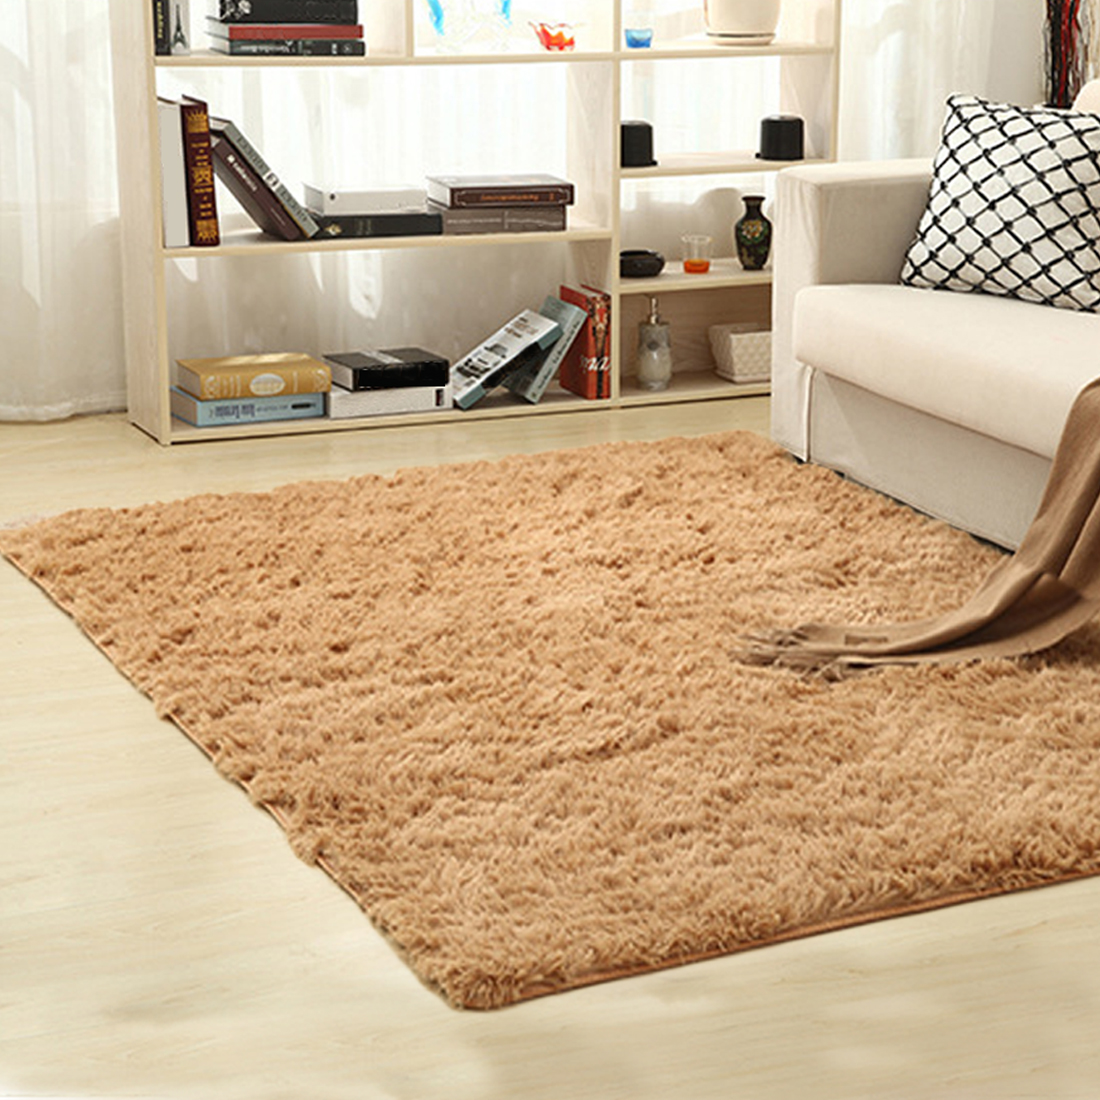 Merveilleux Soft Shaggy Carpet For Living Room European Home Warm Plush Floor Rugs  Fluffy Mats Kids Room Faux Fur Area Rug Living Room Mats In Carpet From  Home U0026 Garden ...